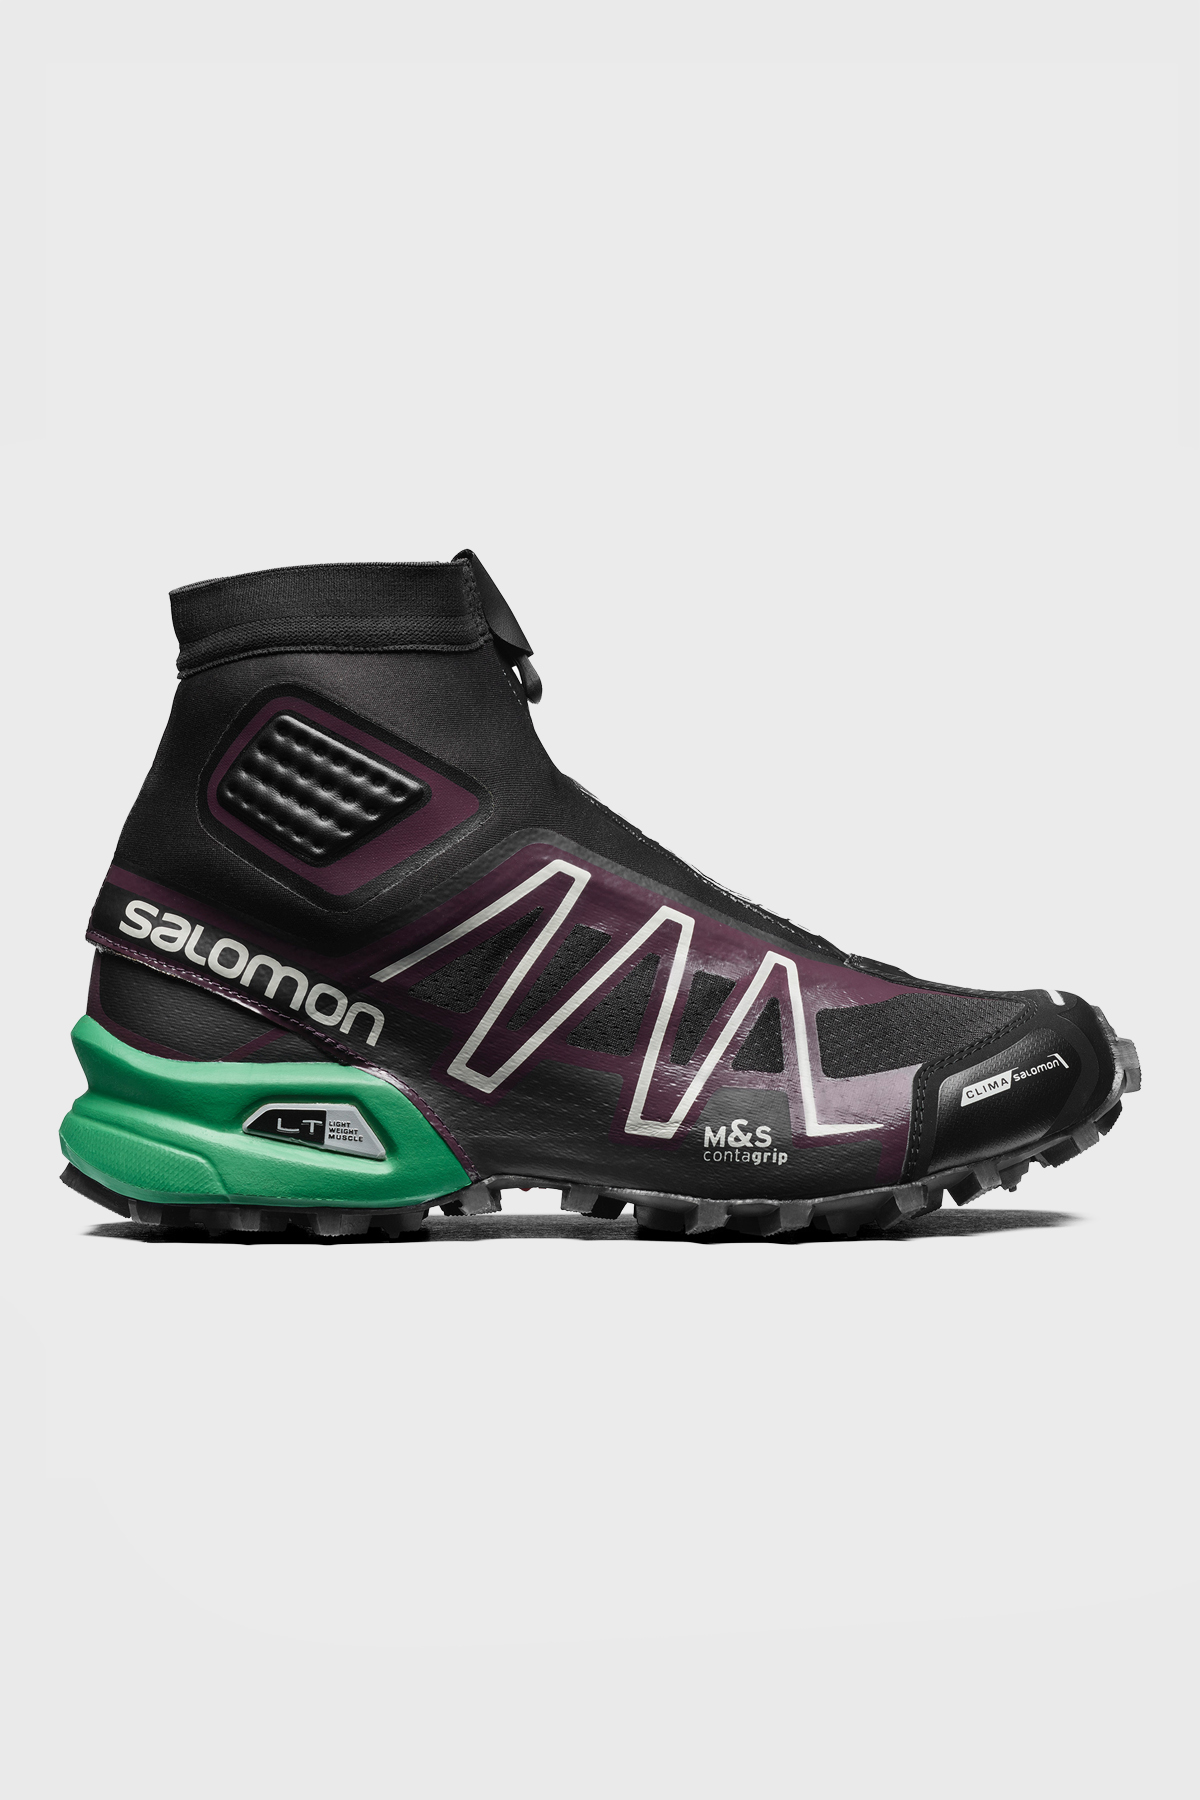 Salomon - SNOWCROSS ADV LTD - Black maverick Amazon